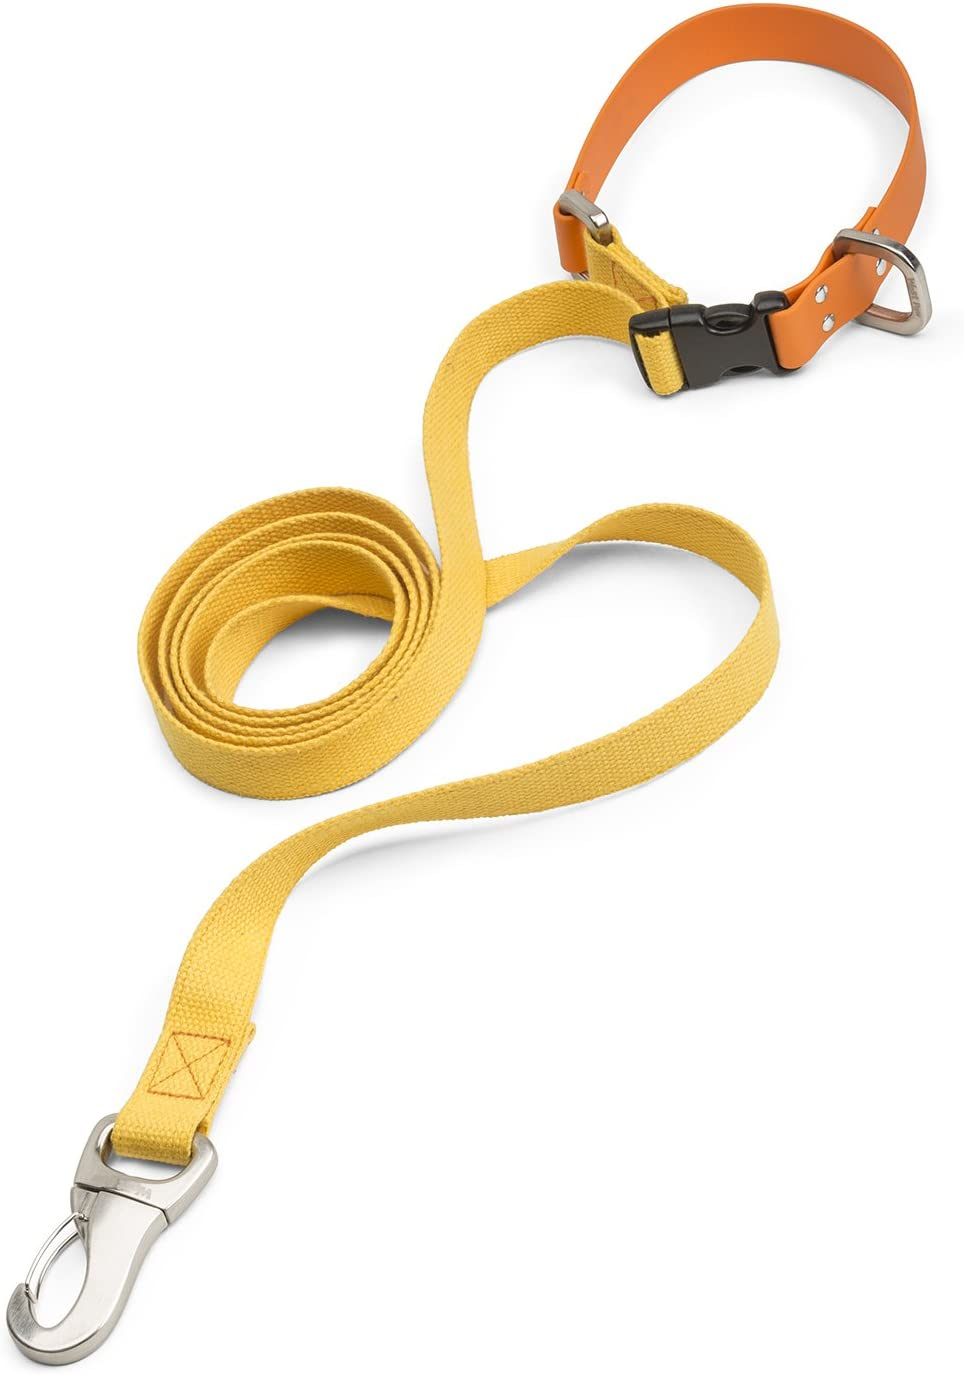 WEST PAW Jaunts Dog Leash with Grip Small Comfort Made Max 40% Be super welcome OFF in USA